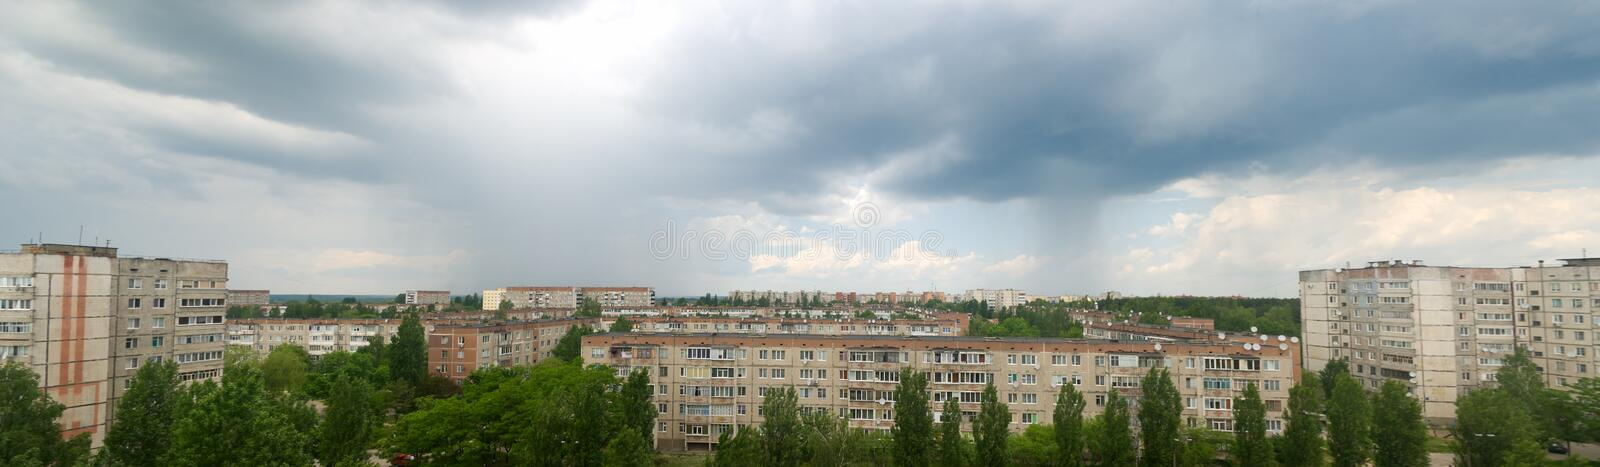 Summer storm with rain over the city royalty free stock photo